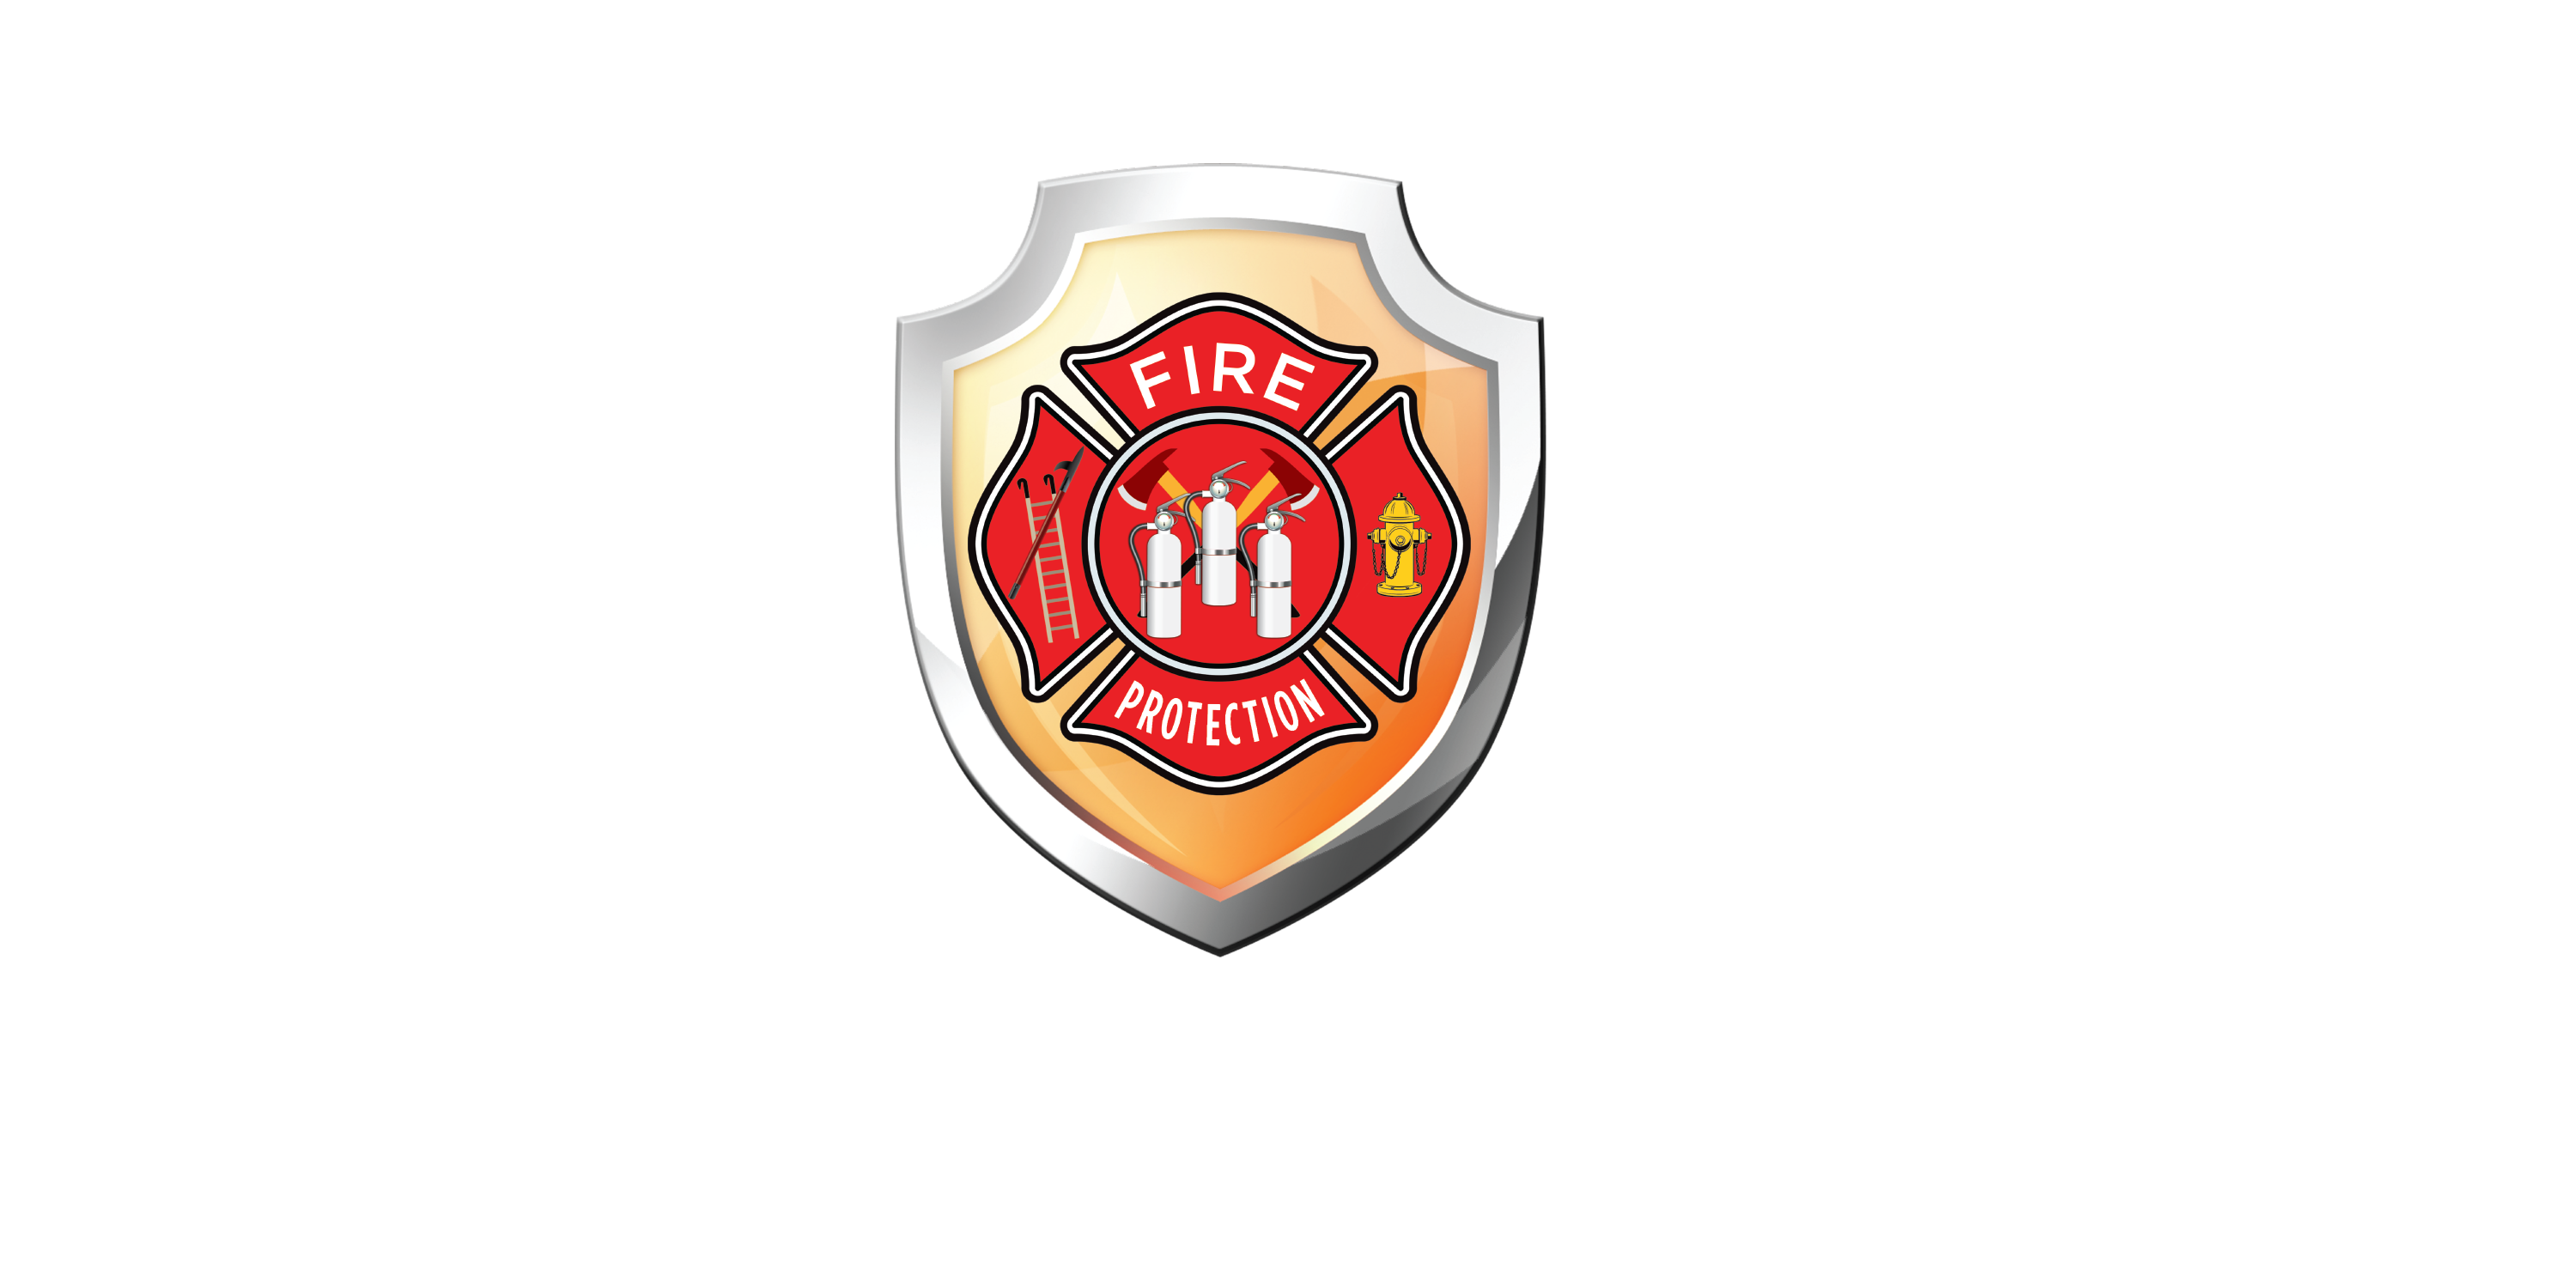 Pal Fire Protection, Inc